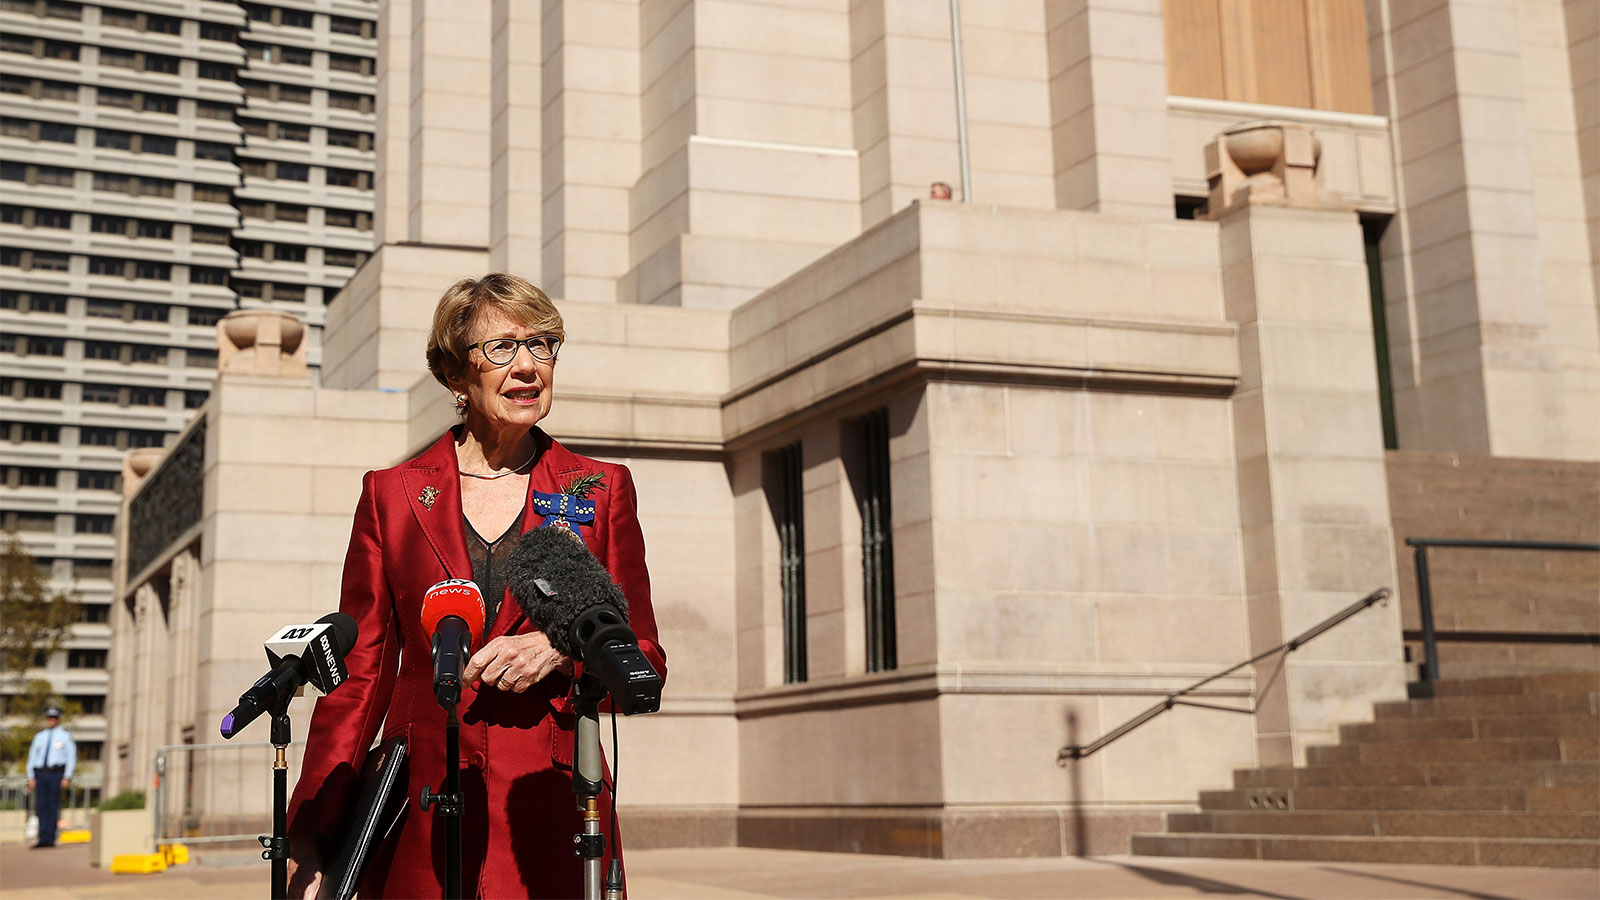 Margaret Beazley, Governor of New South Wales, speaks to the media in front of a near empty Anzac Memorial in Hyde Park in Sydney, Australia on April 25.